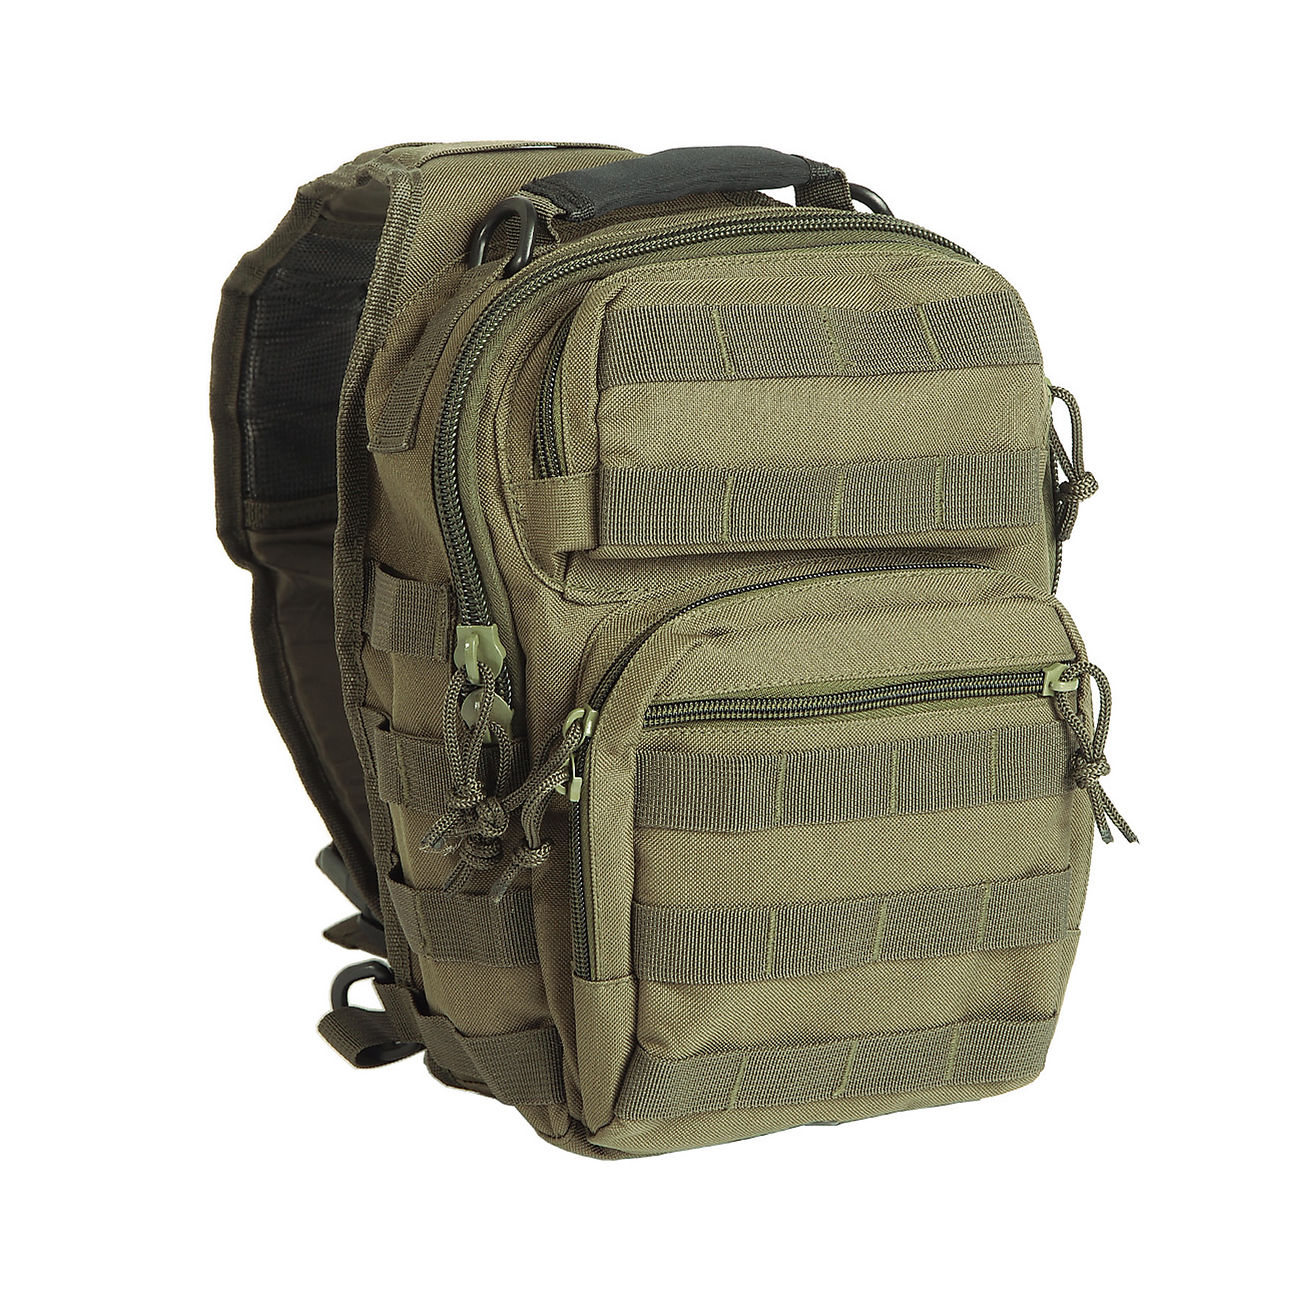 Mil-Tec Rucksack One Strap Assault Pack small 8L oliv 0